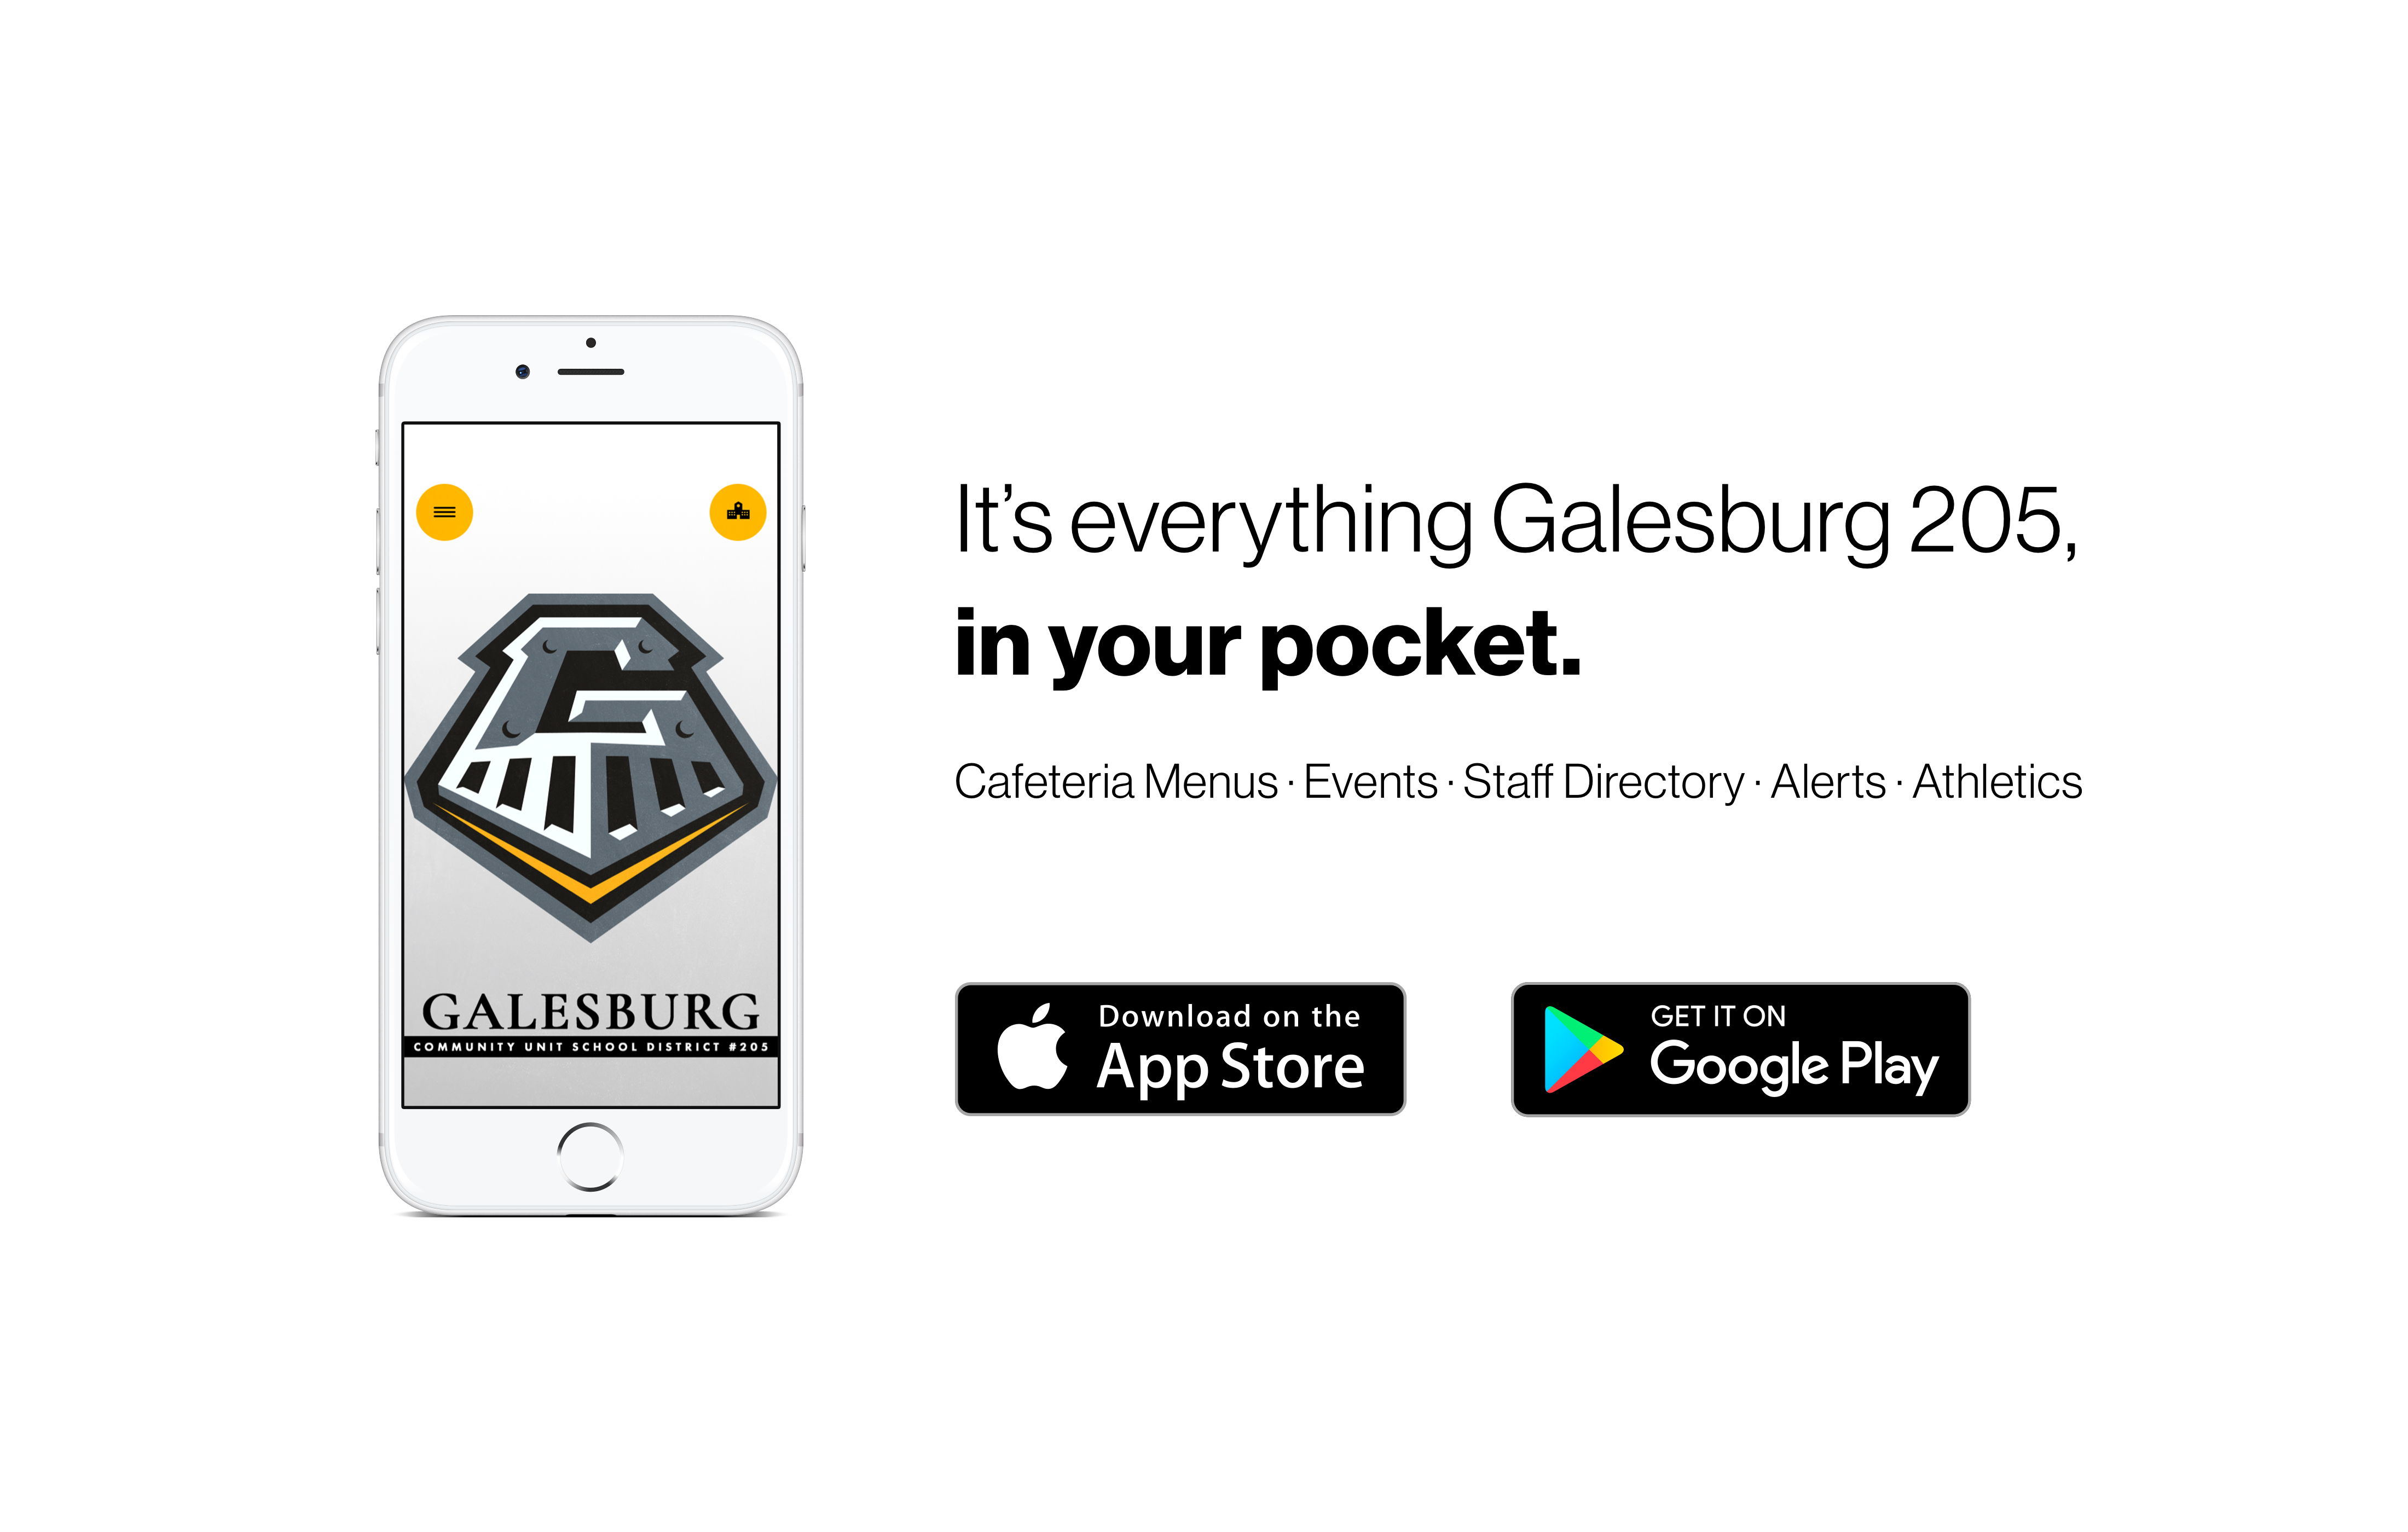 New Galesburg #205 App